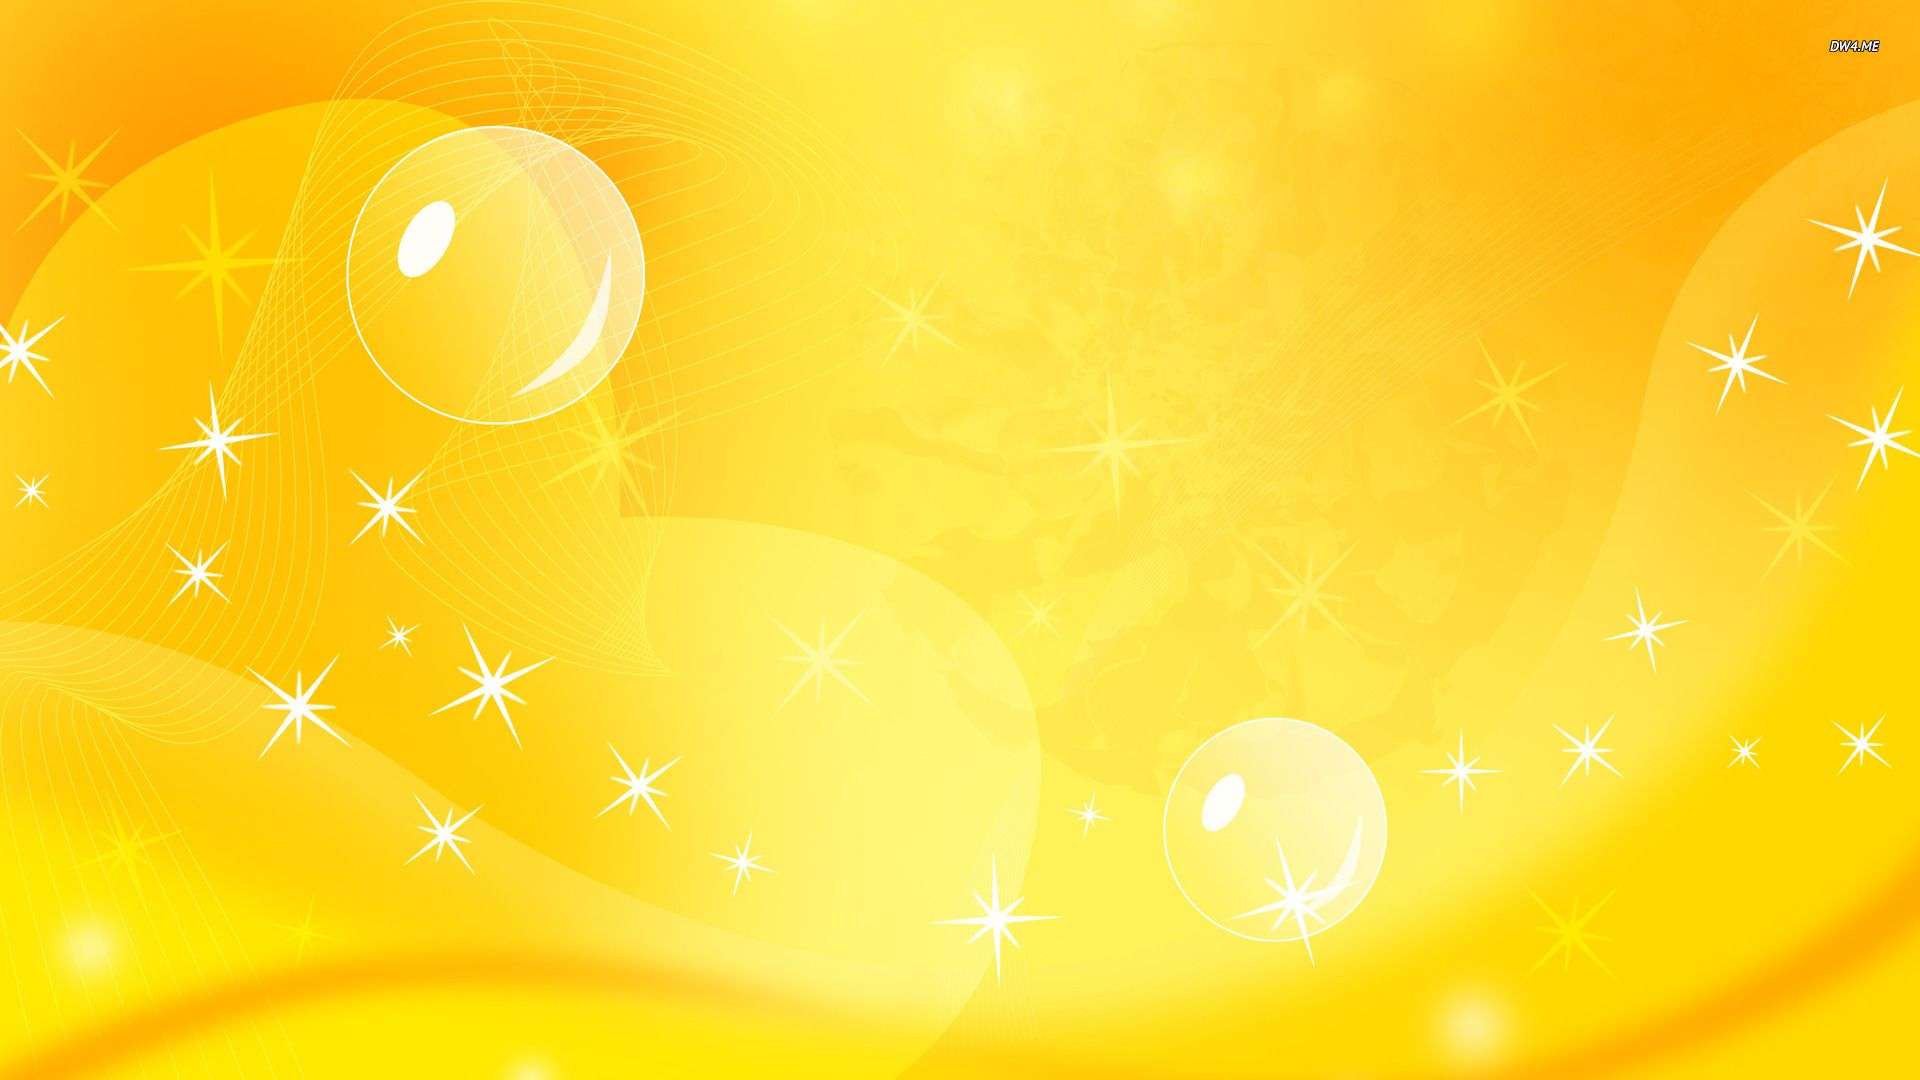 Yellow Abstract Background Wallpapers - http ...